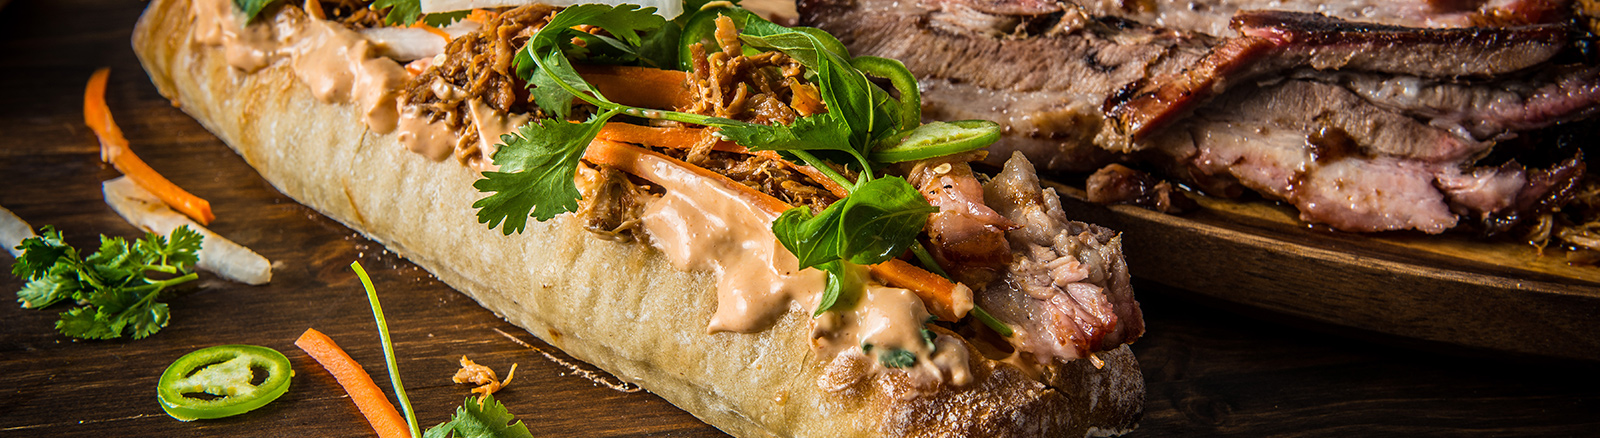 Traeger Recipe - BBQ Pulled Pork And Pork Belly Banh